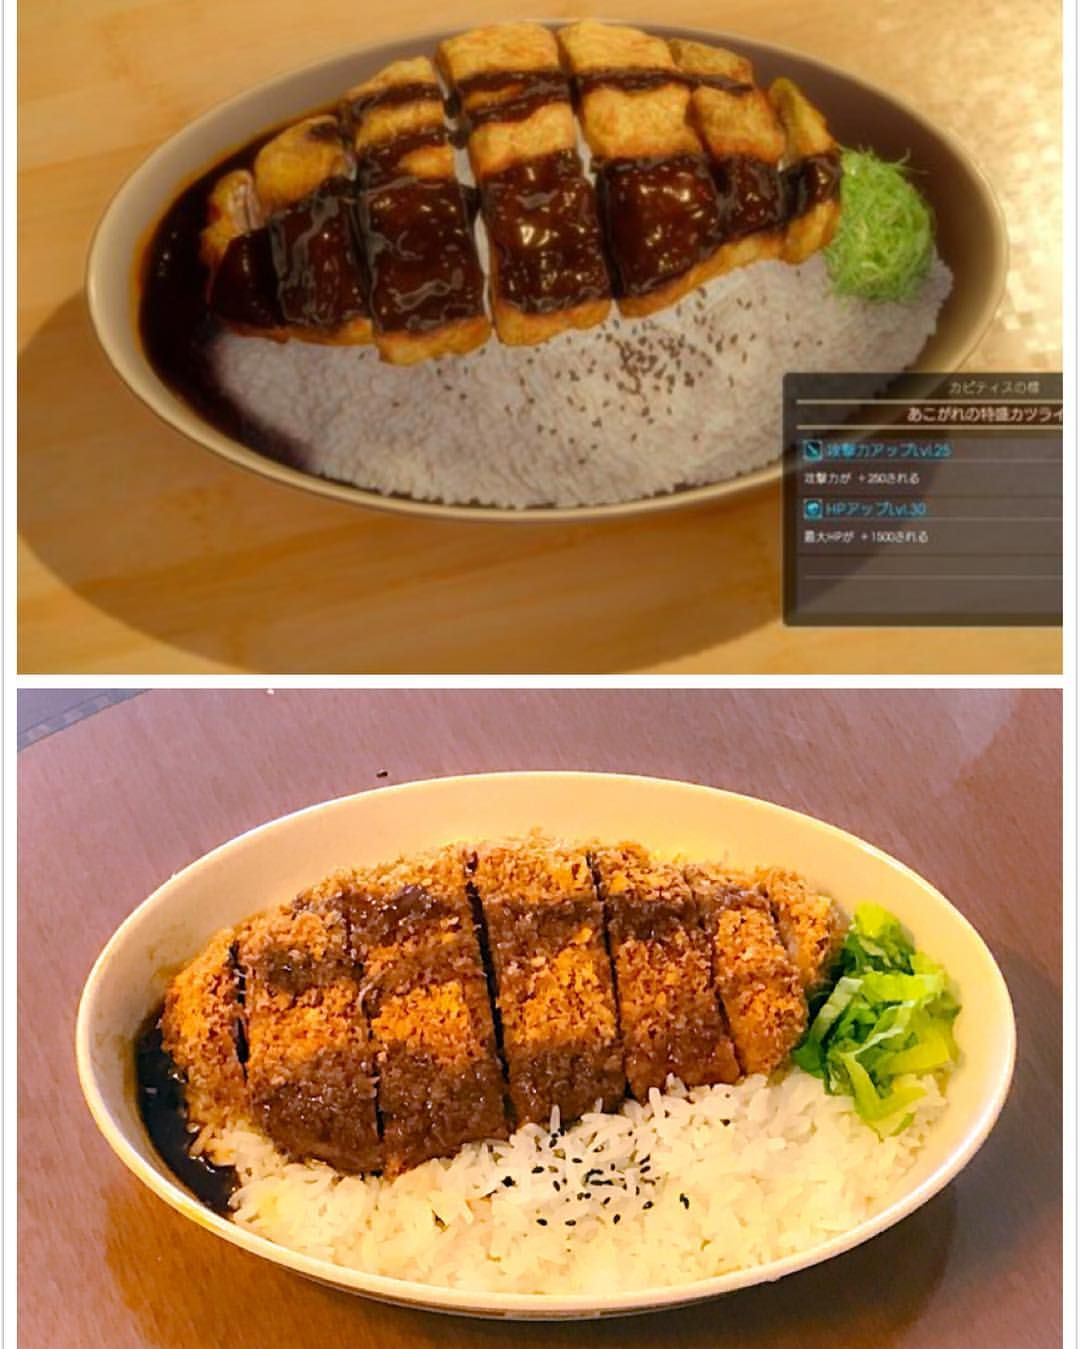 Ffxv cooking recipe hearty cutlet on rice from honey toast ffxv cooking recipe hearty cutlet on rice from honey toast tumblr forumfinder Gallery